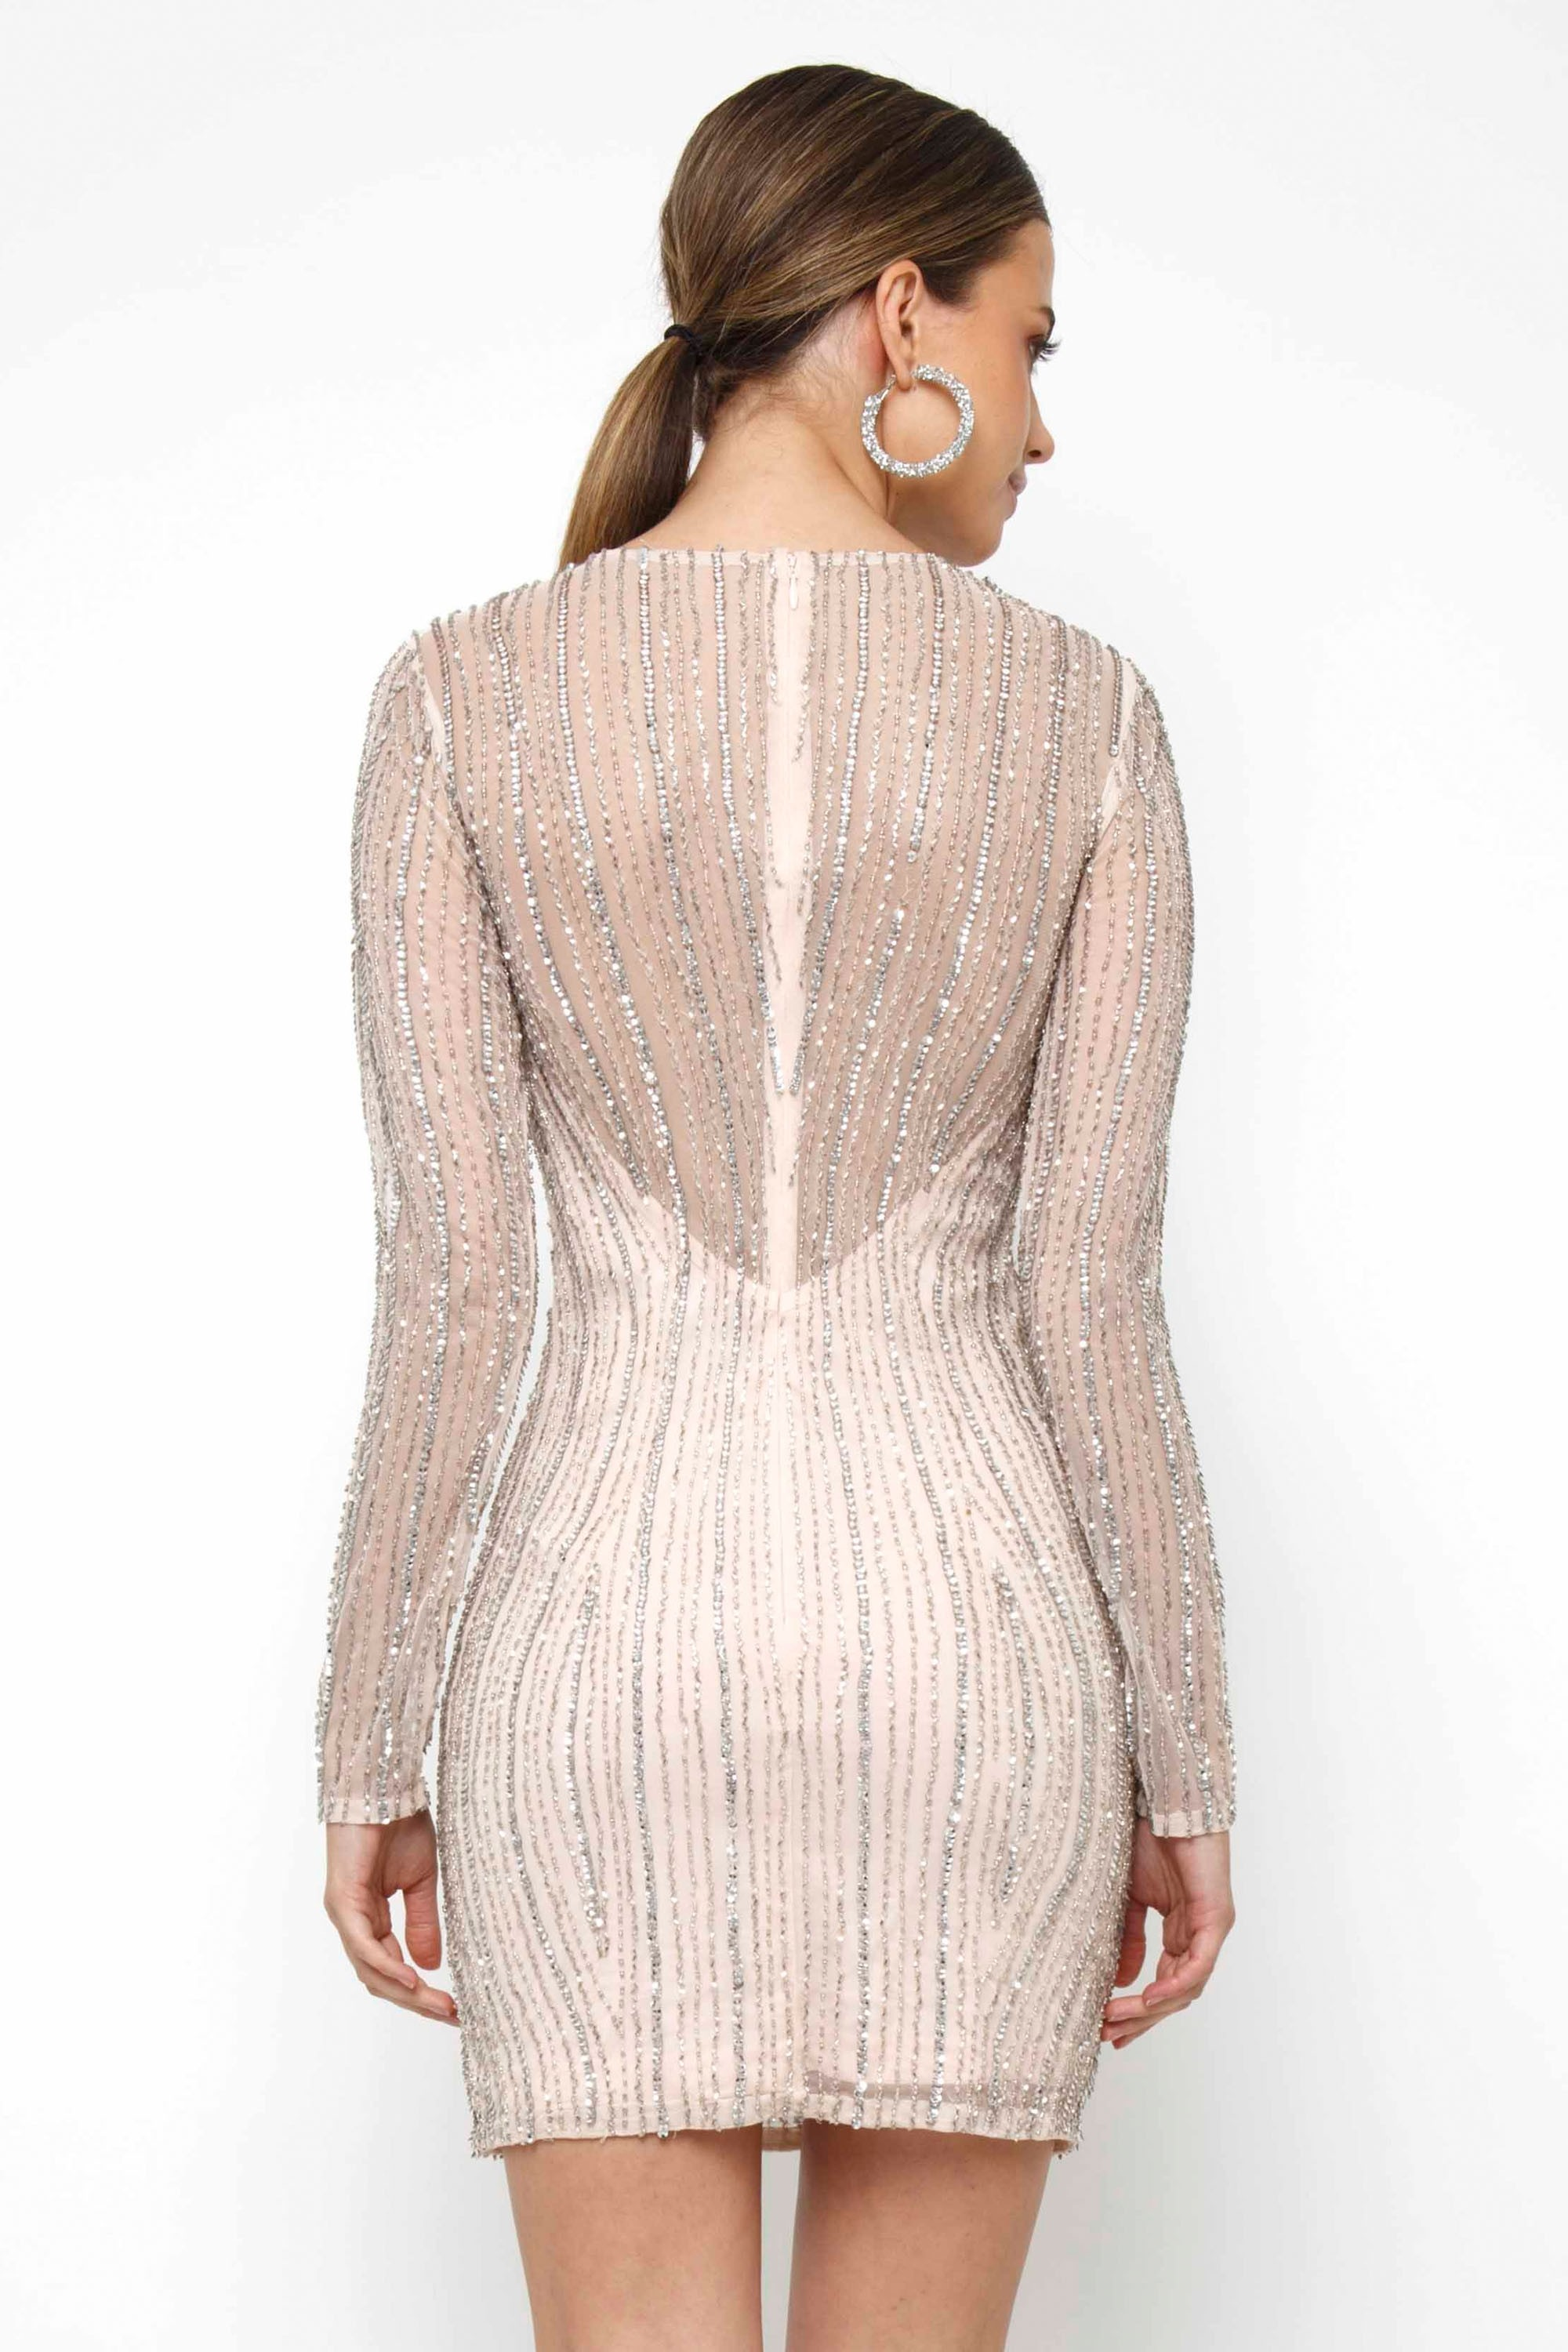 lace amp beads molly cream embellished mini dress party